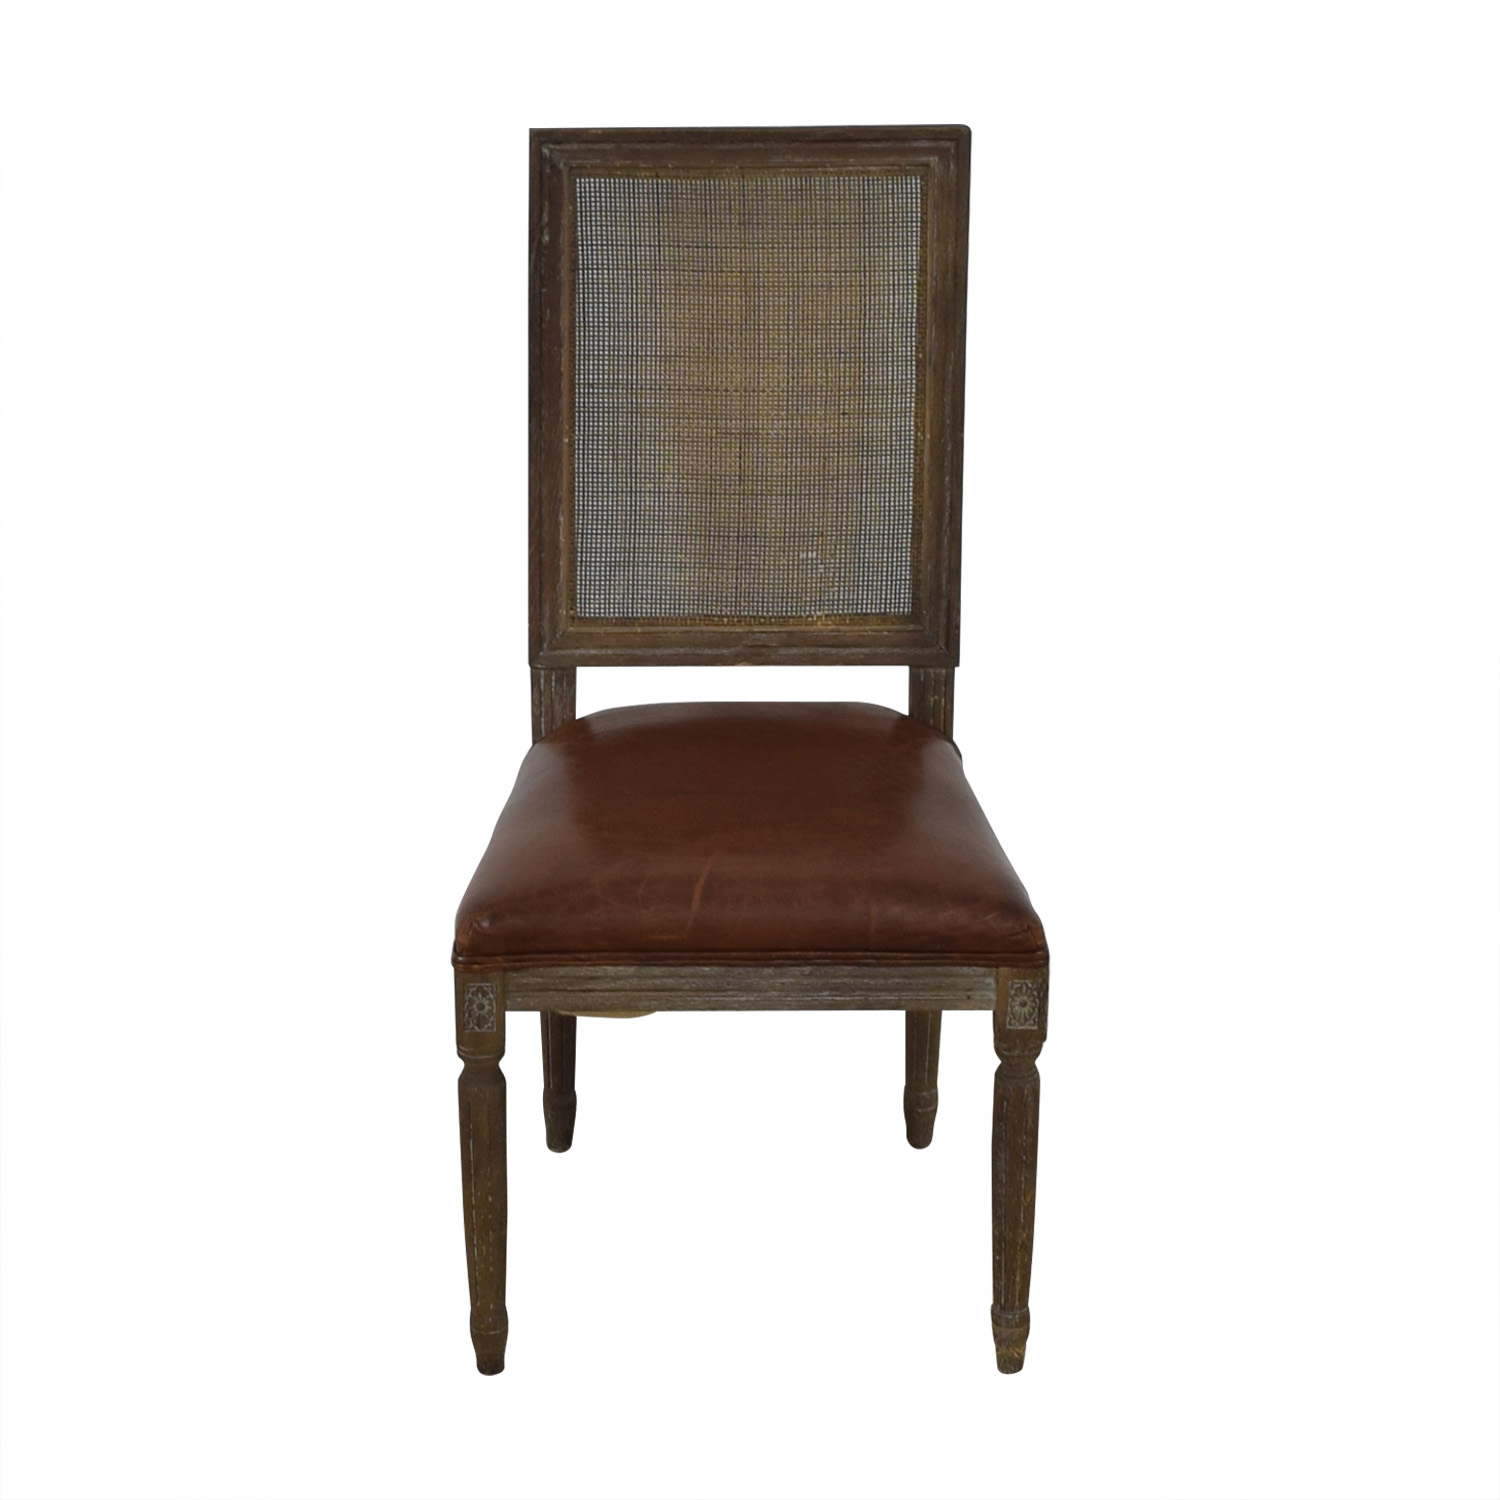 Restoration Hardware Restoration Hardware Vintage French Square Cane Back Leather Side Chair discount